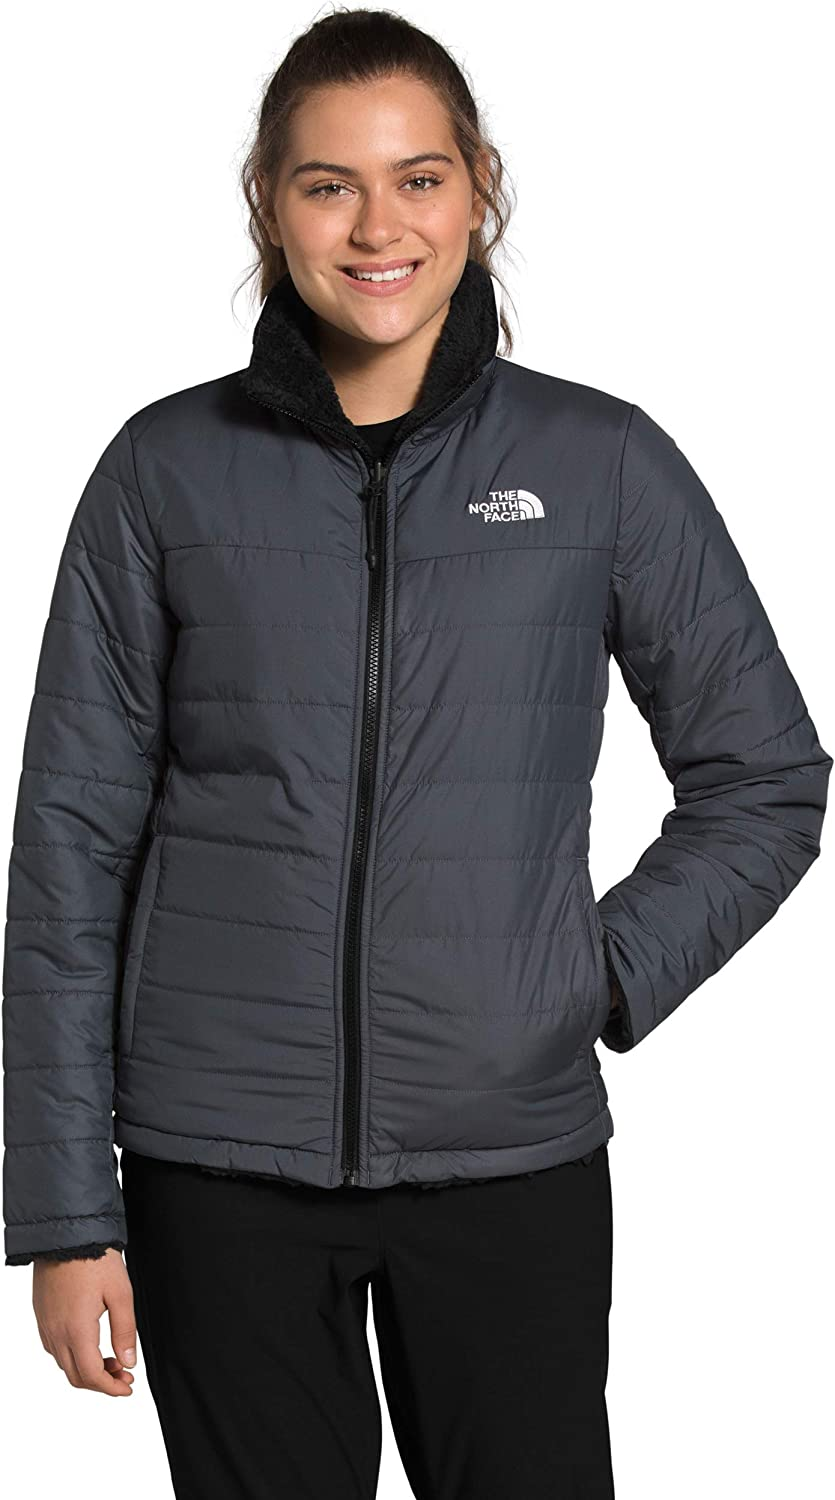 The North Face Women's Jacket Mossbud Insulated Reversible ファクトリーアウトレット 店舗